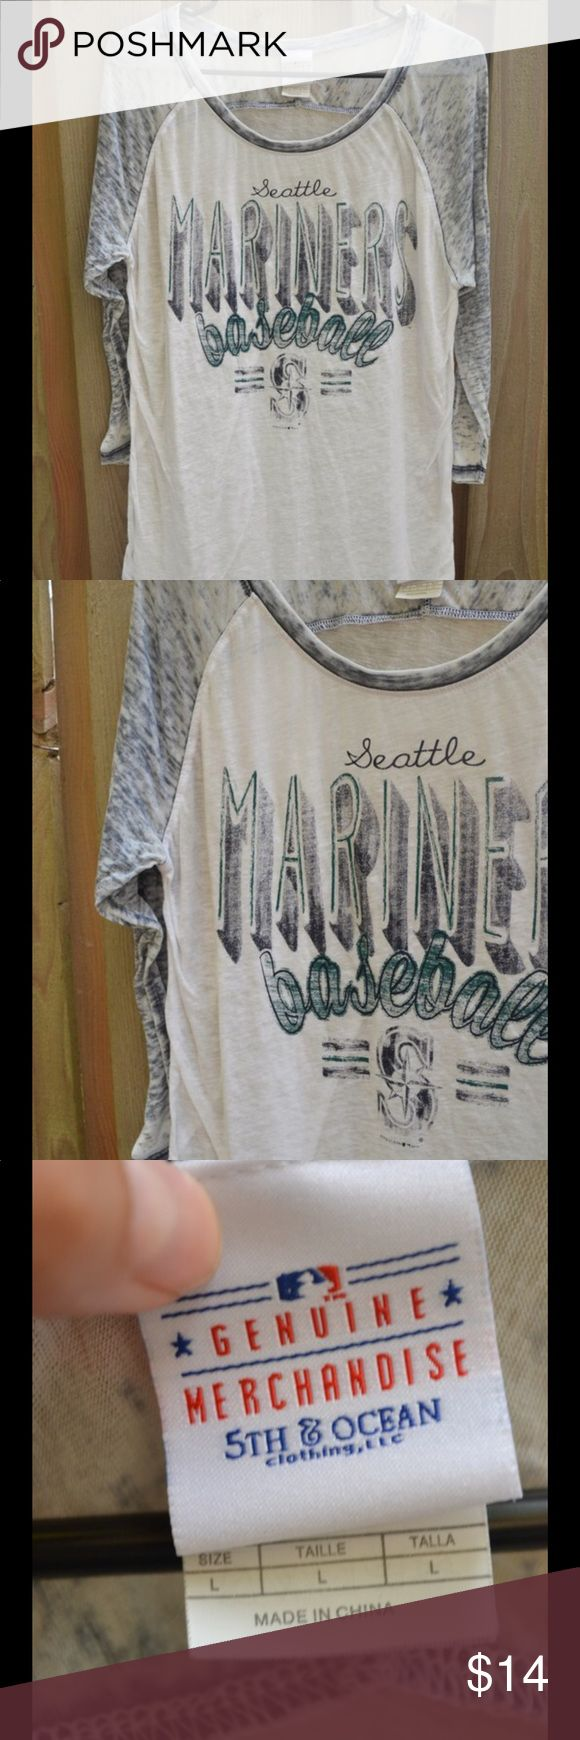 """Seattle Mariners Top - Size Large! This top is a size large and says """"Seattle Mariners Baseball"""", genuine MLB merchandise! The material is somewhat shear and it also has 3/4 length sleeves. Rep the Mariners or Seattle this season :) 5th & Ocean Tops Tees - Long Sleeve"""